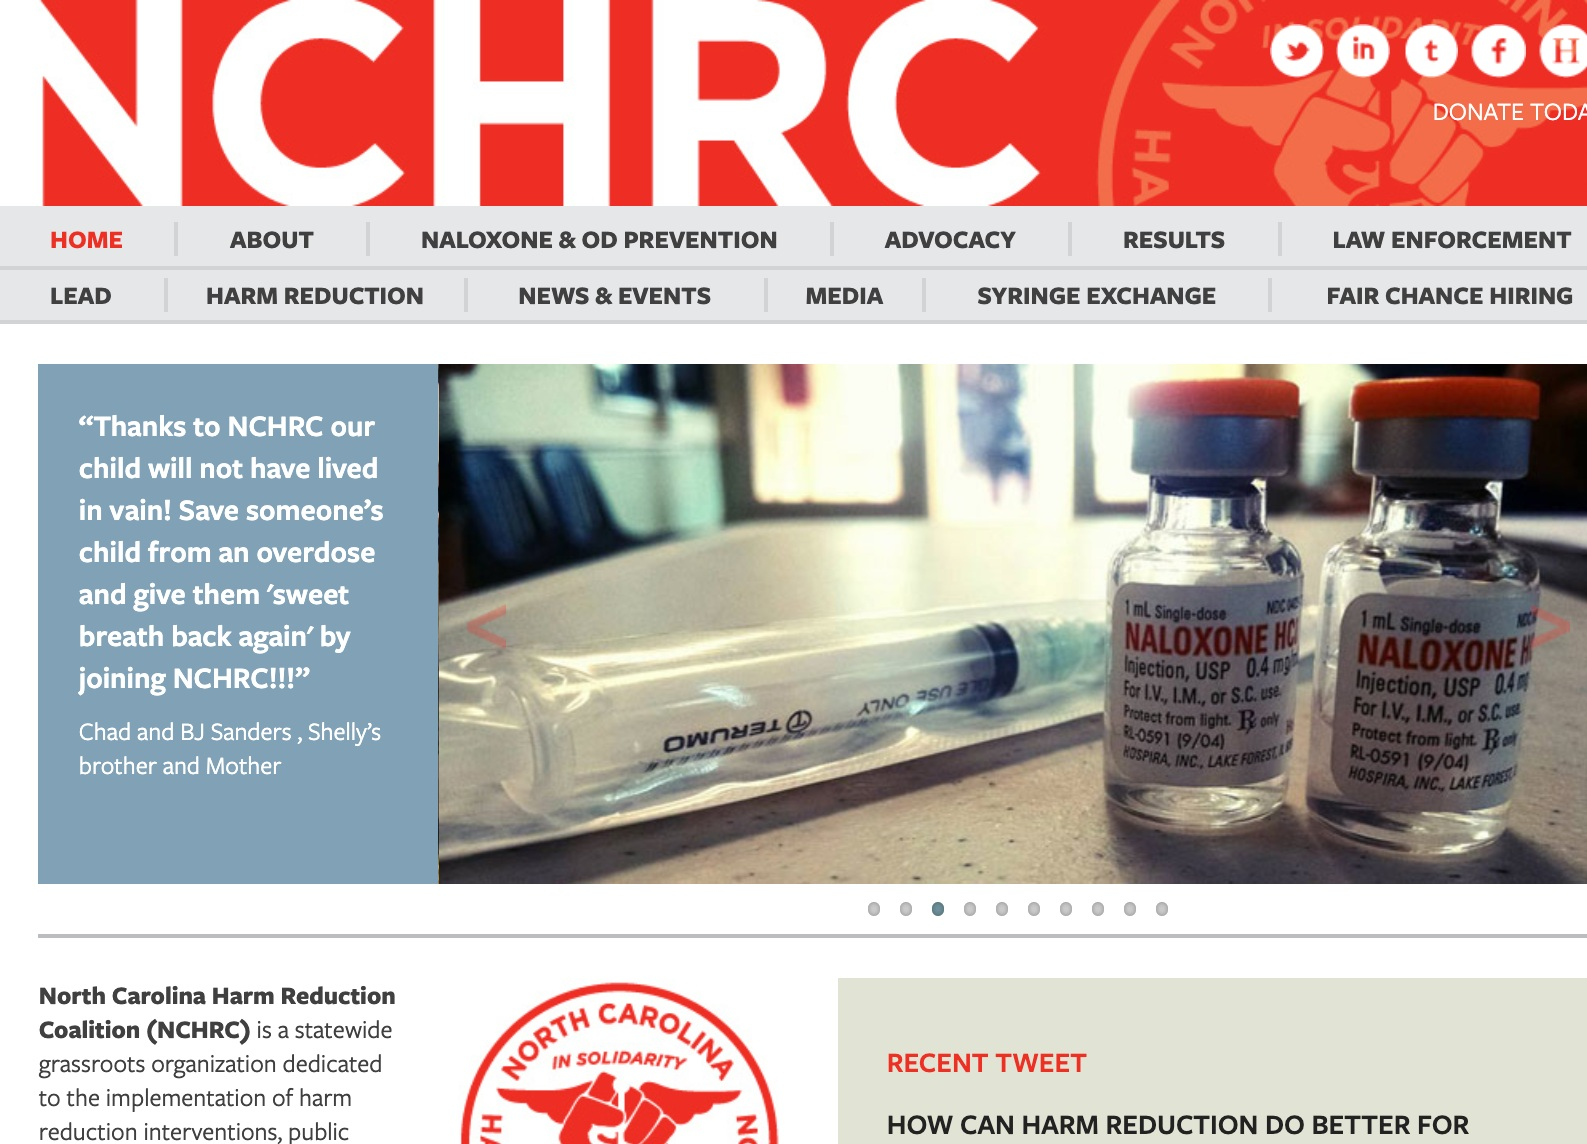 north carolina harm reduction coalition - North Carolina Harm Reduction Coalition (NCHRC) is NC's most comprehensive harm reduction agency. Their website includes extensive resources, education, and advocacy opportunities.